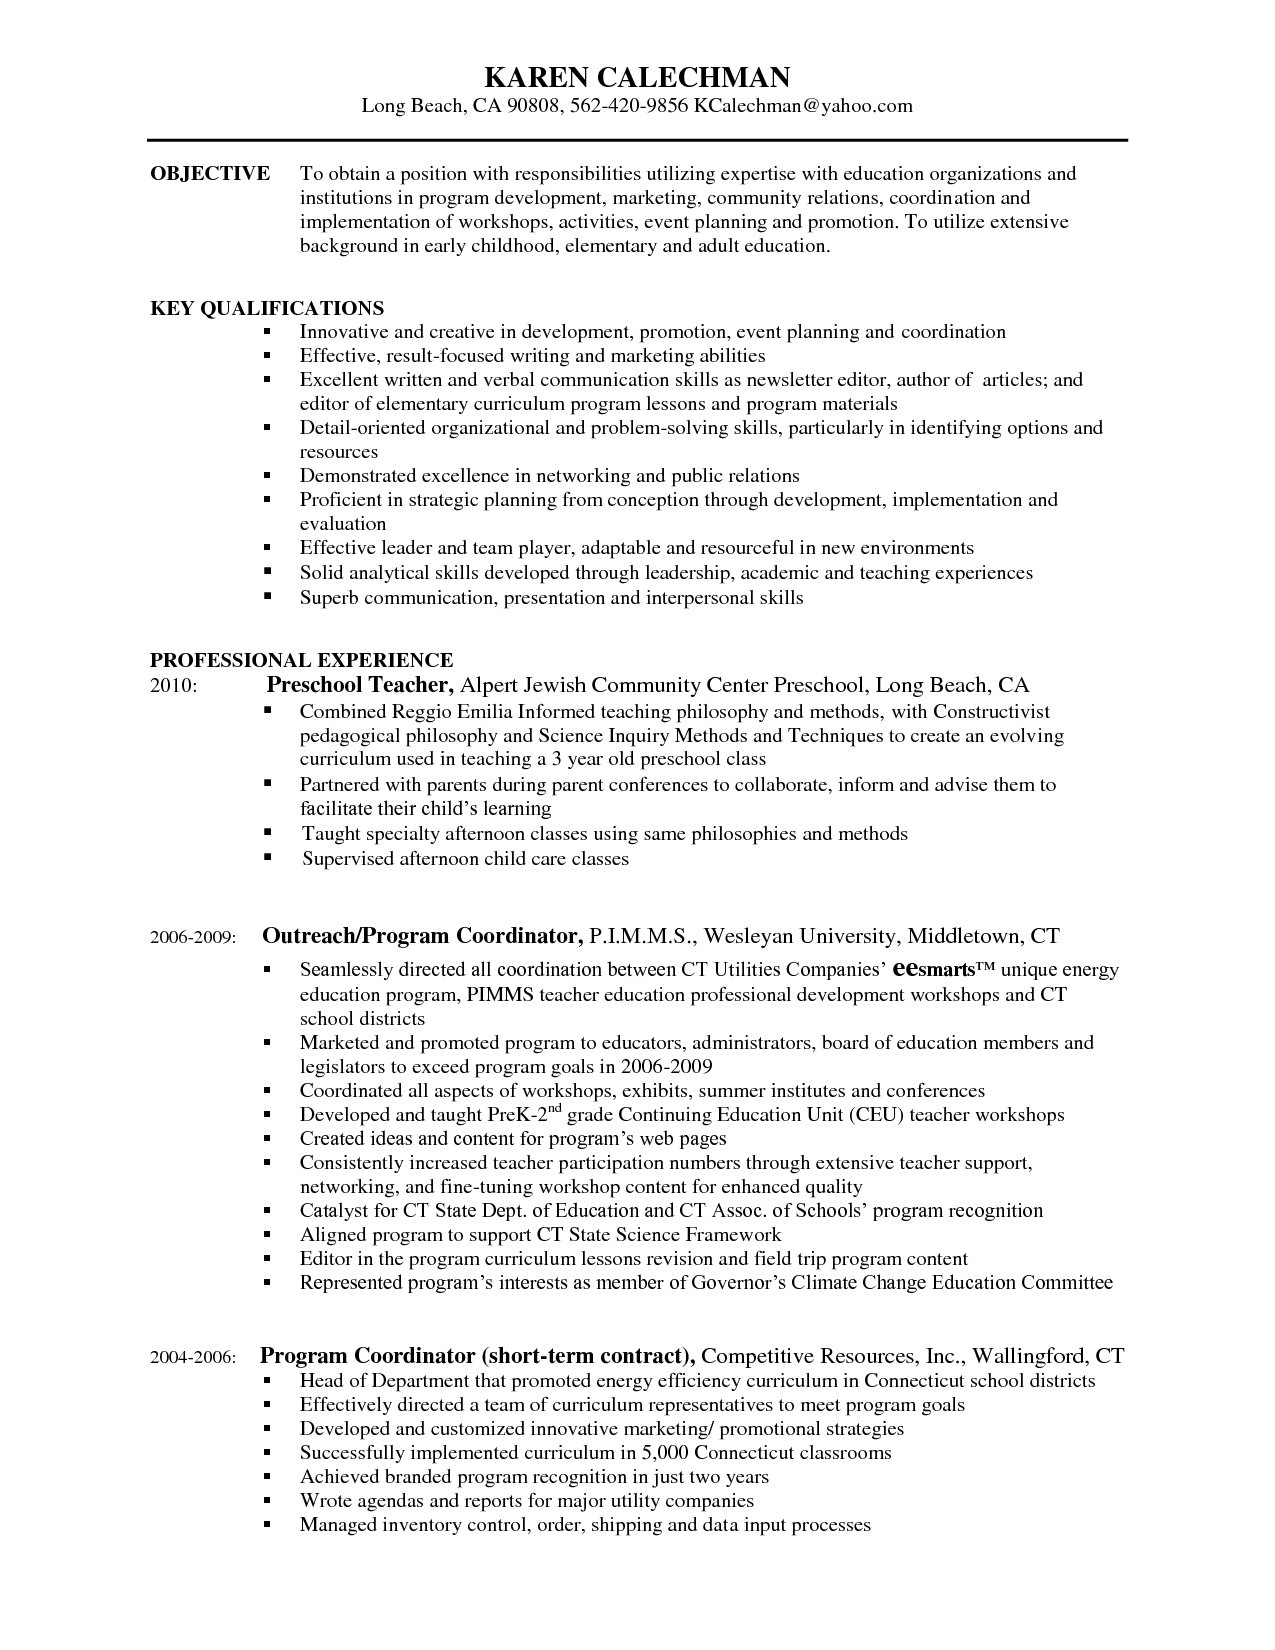 Teaching Resume Objective Educational Leader Resume Objective Sample Skills After School